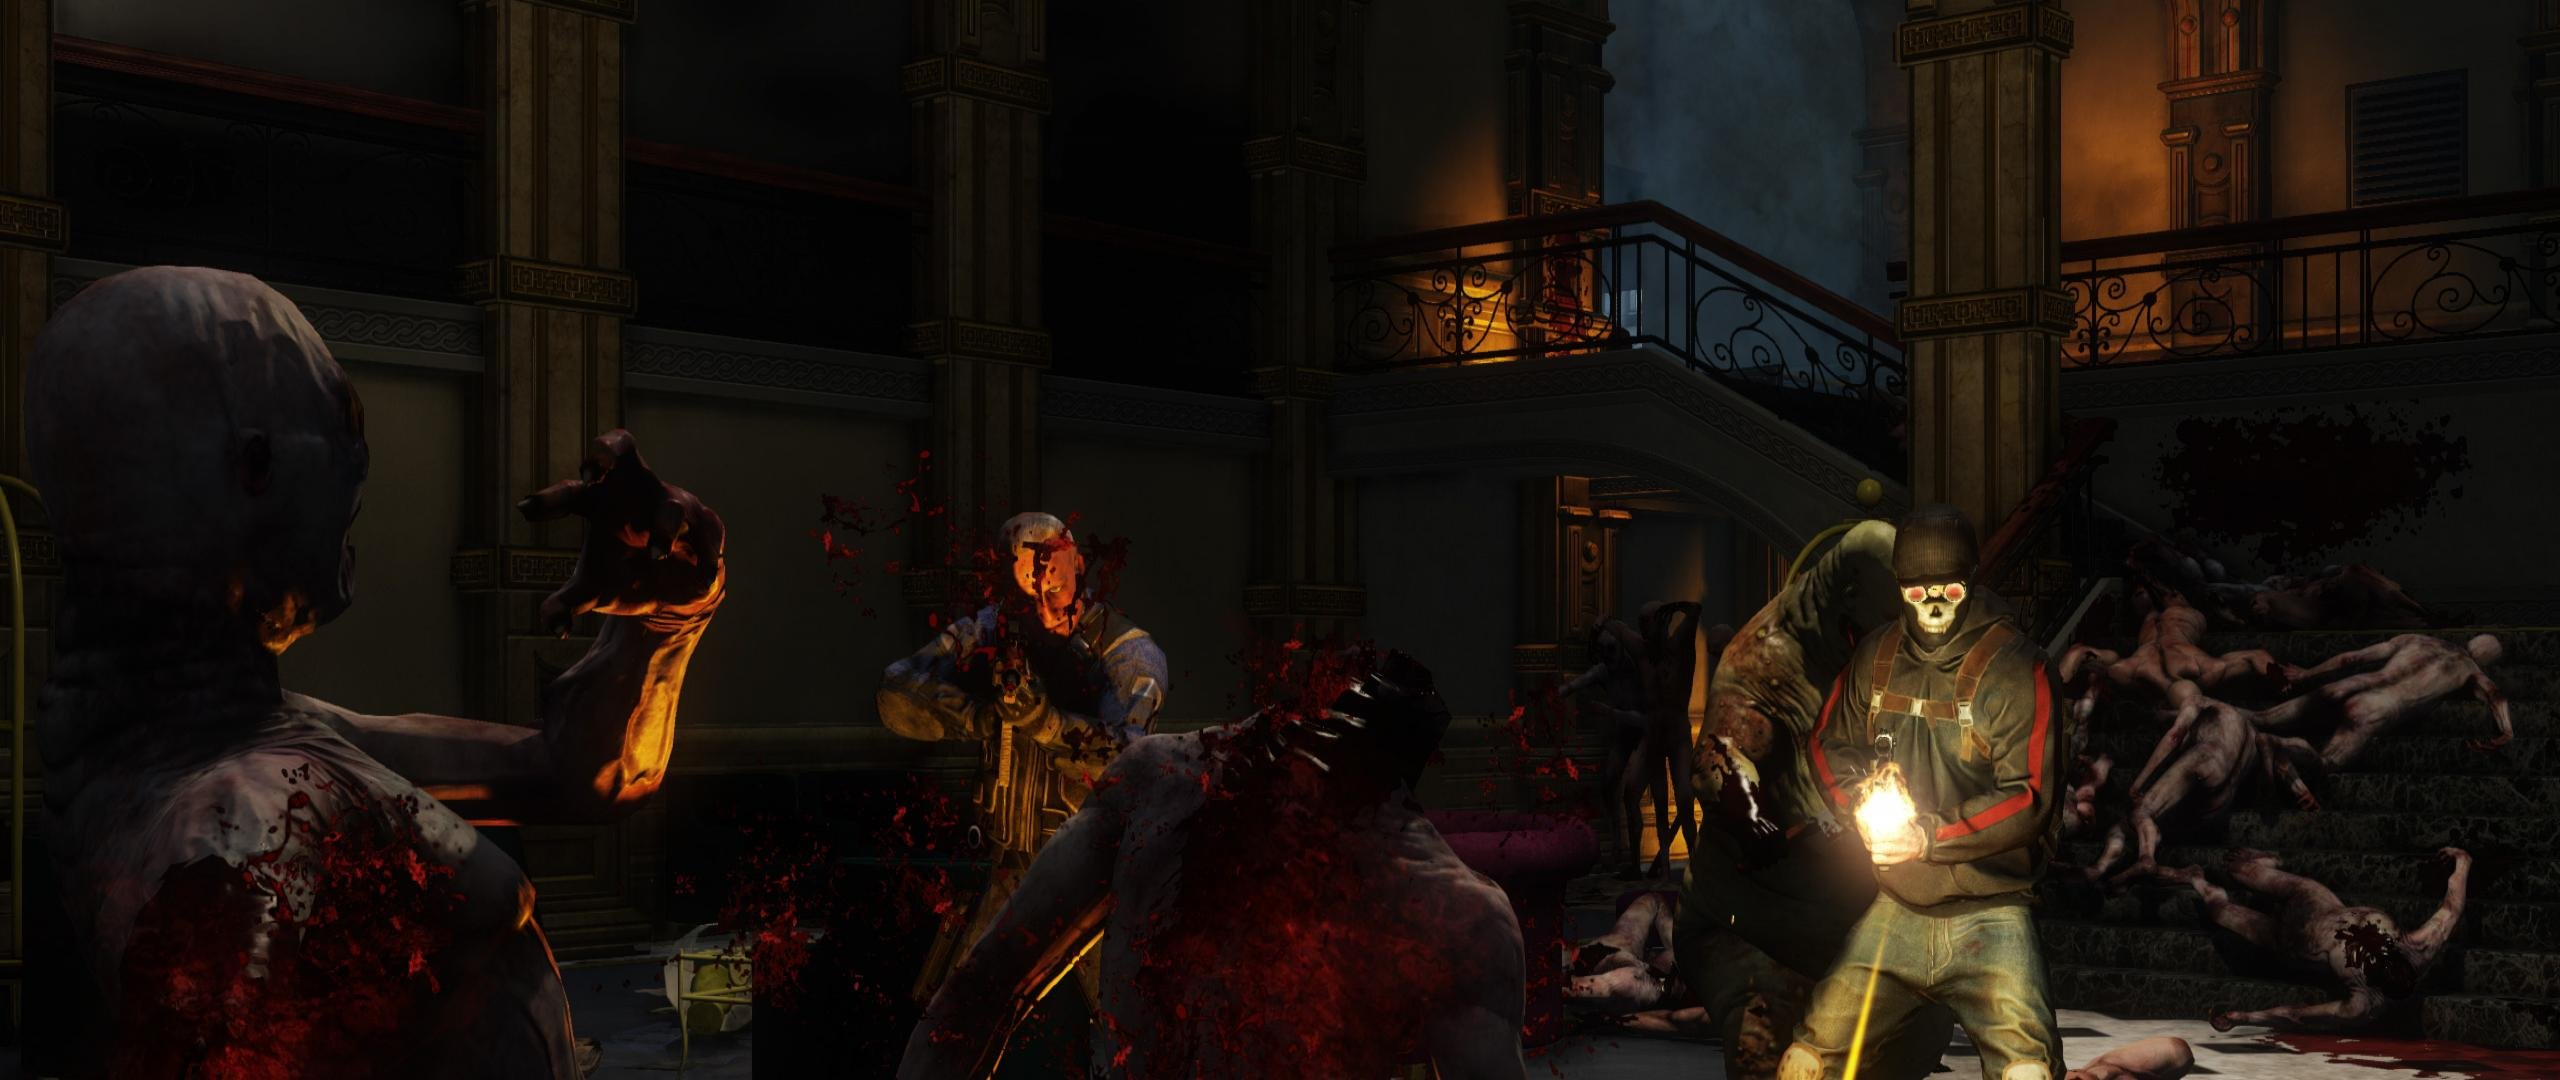 Best Killing Floor 2 Wallpaper Id 452140 For High Resolution Hd